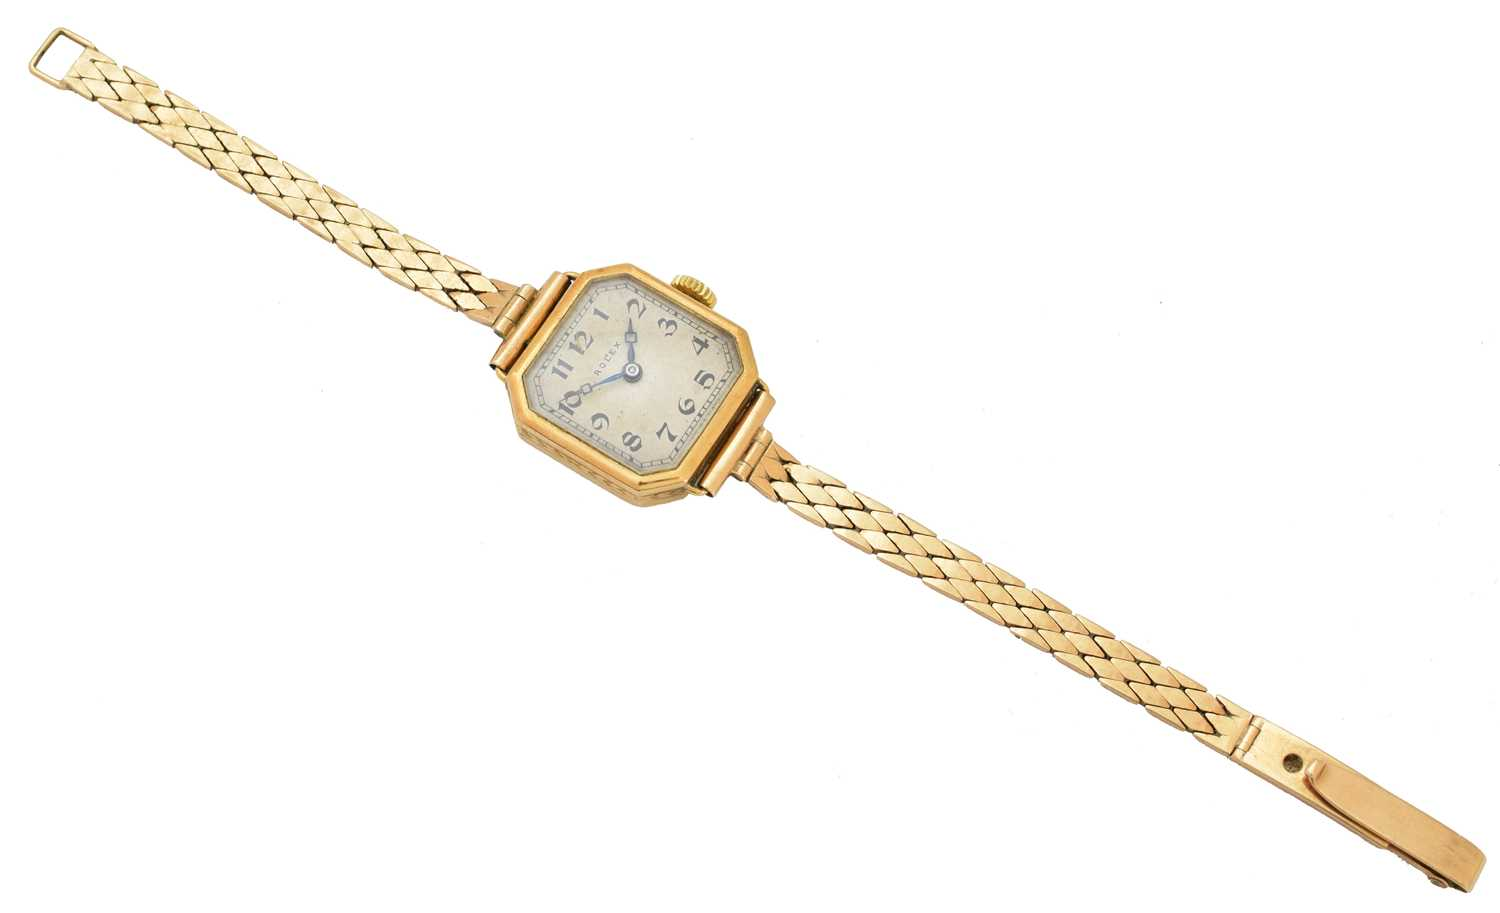 An early 20th century 18ct gold Rolex watch, - Image 3 of 5